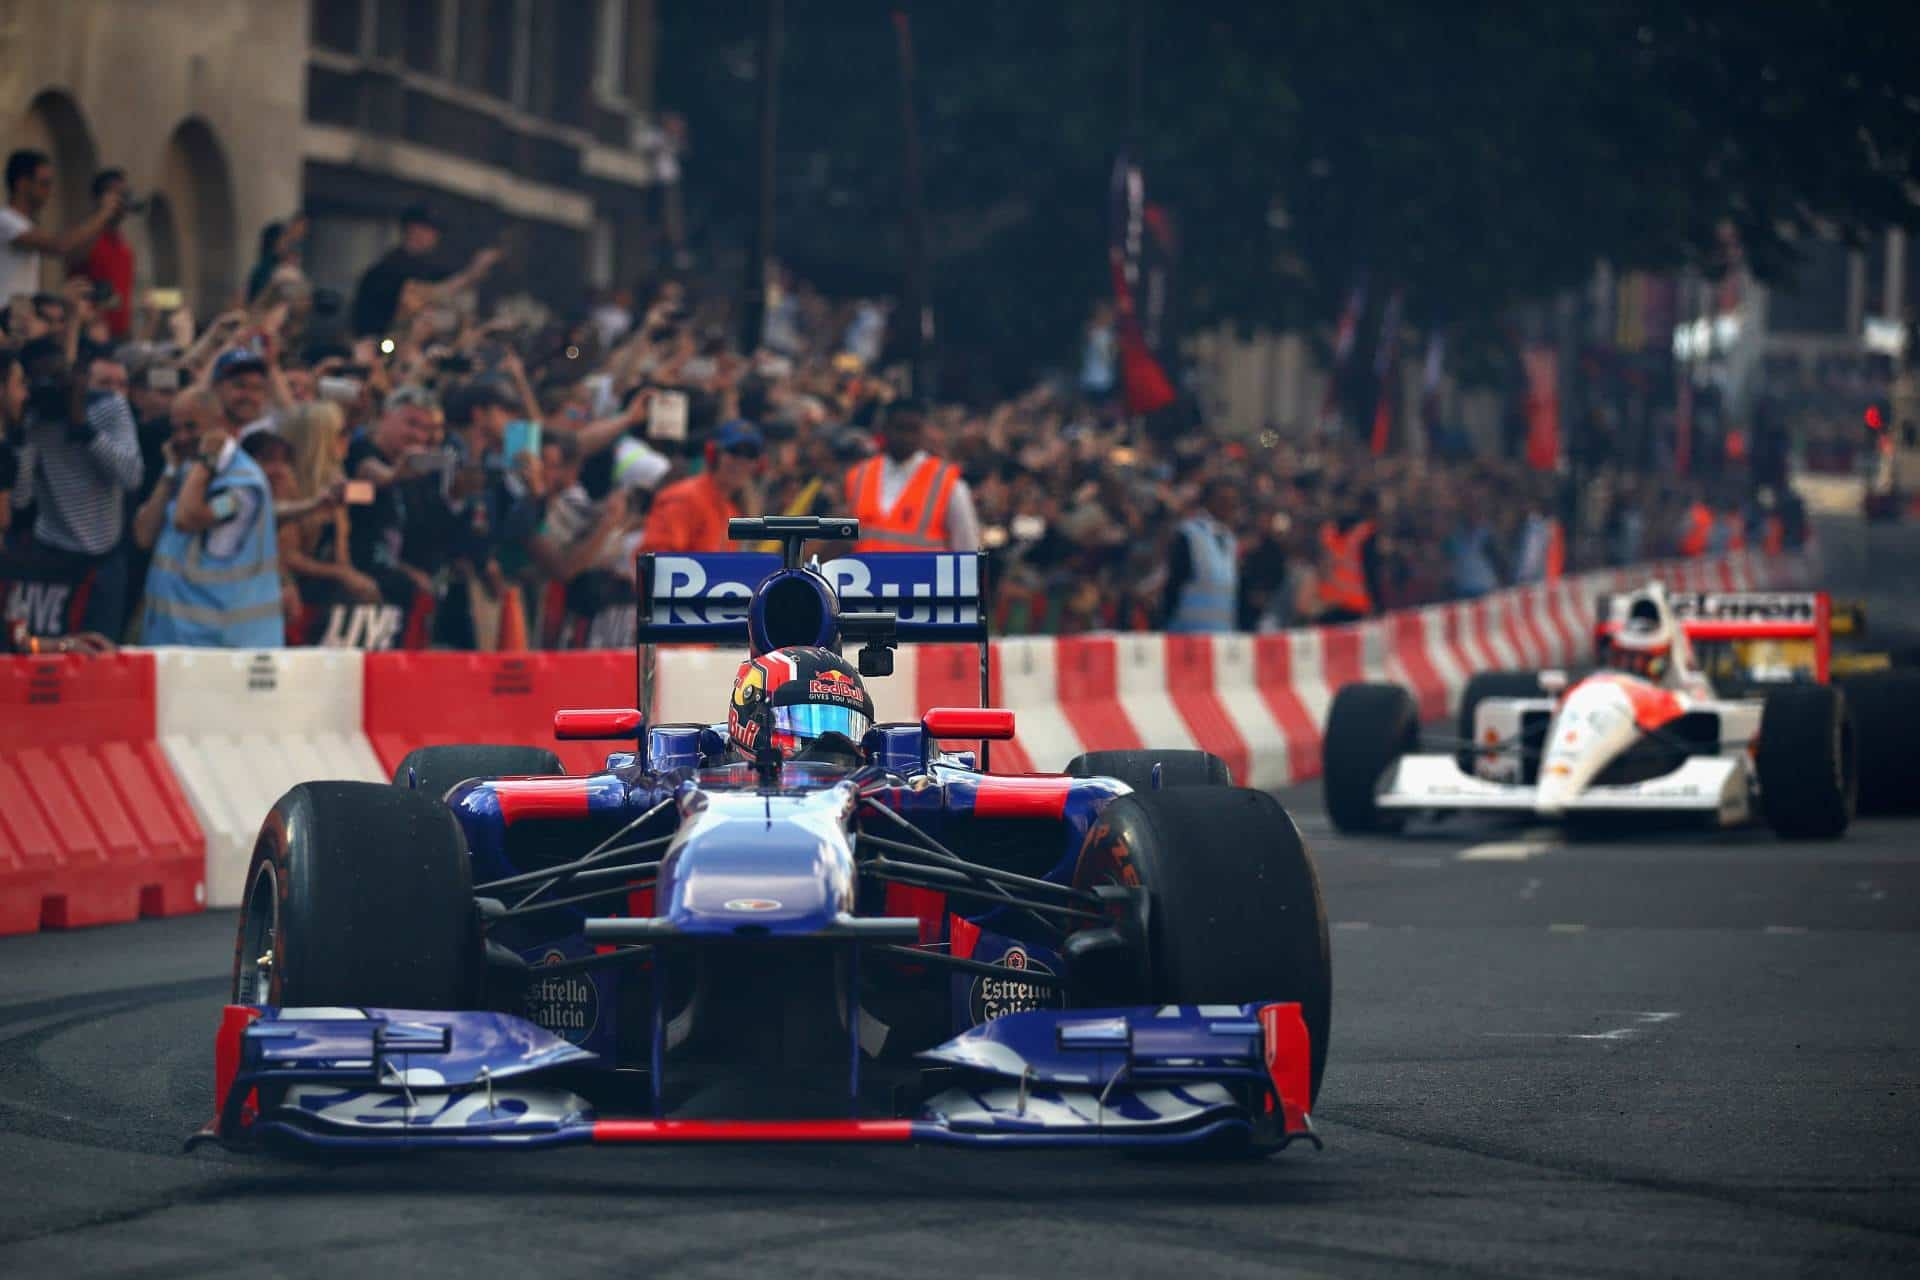 Red Bull RB7 in Toro Rosso 2017 paint London F1 show 2017 Photo Red Bull